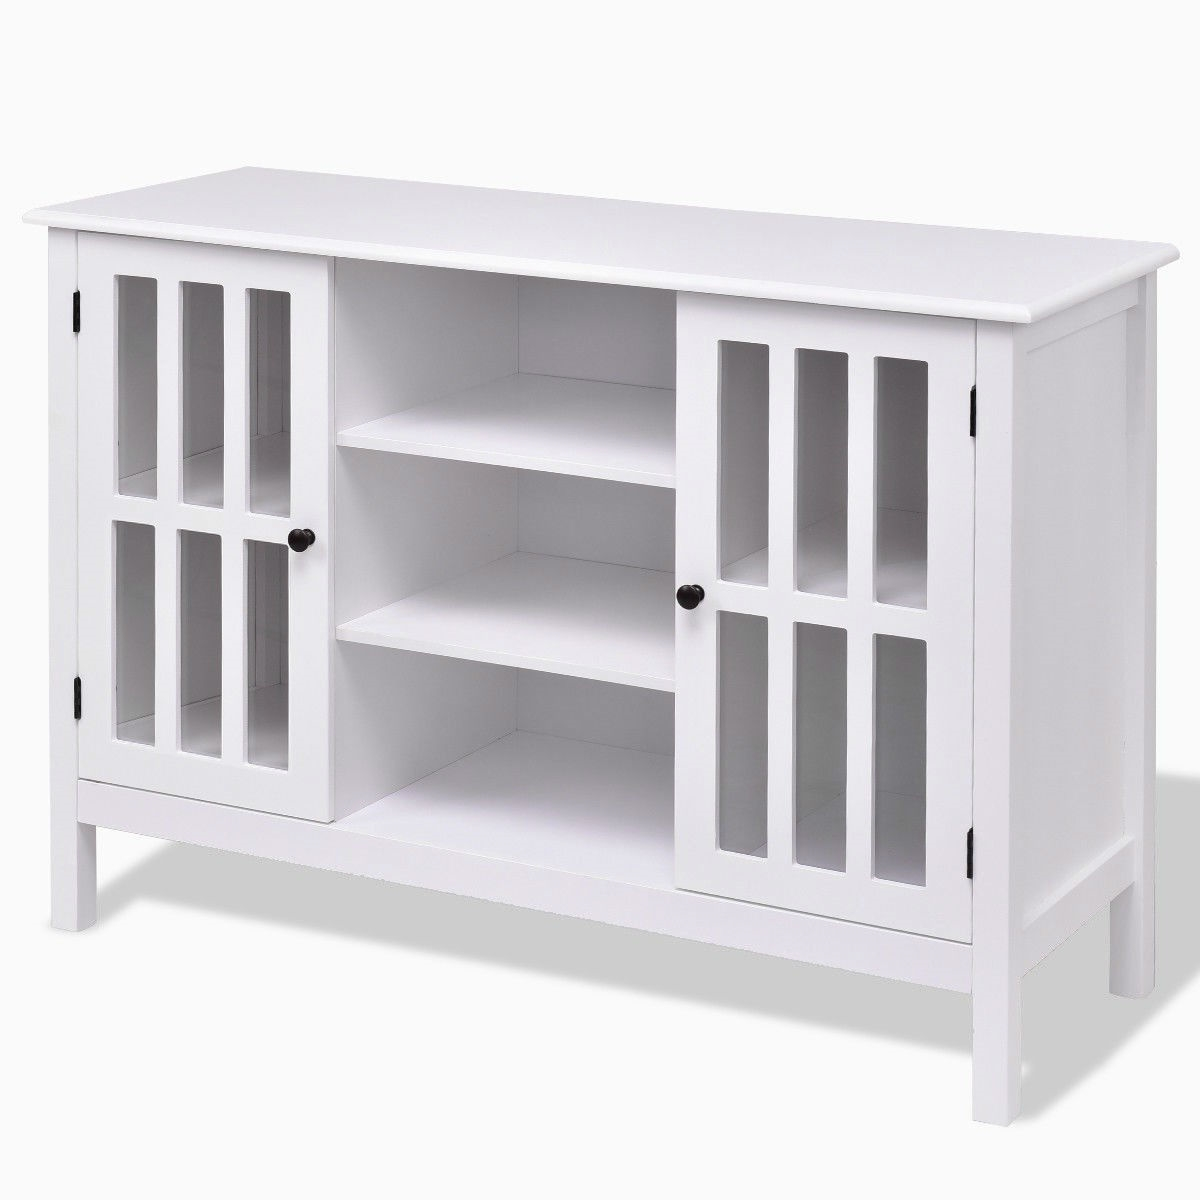 White Wood Sofa Table Console Cabinet With Tempered Glass Panel